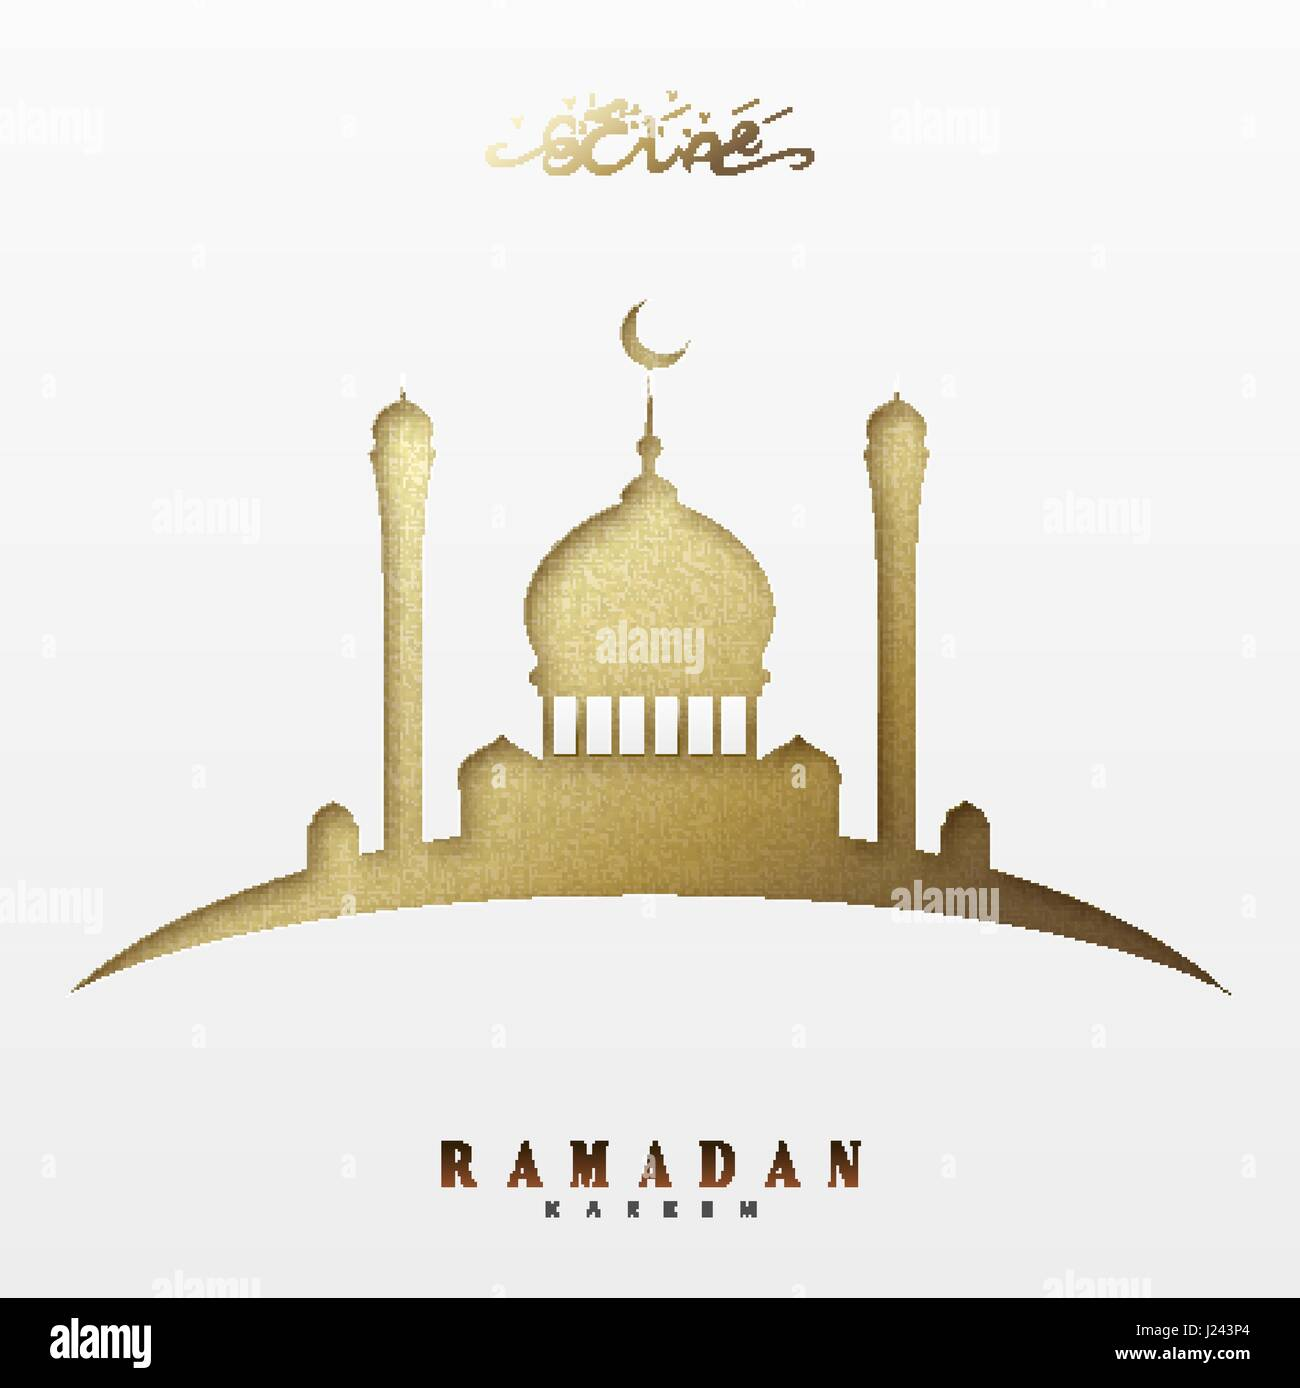 Mosque background for ramadan kareem stock photography image - Ramadan Greeting Card With Arabic Calligraphy Ramadan Kareem Islamic Background With Mosques